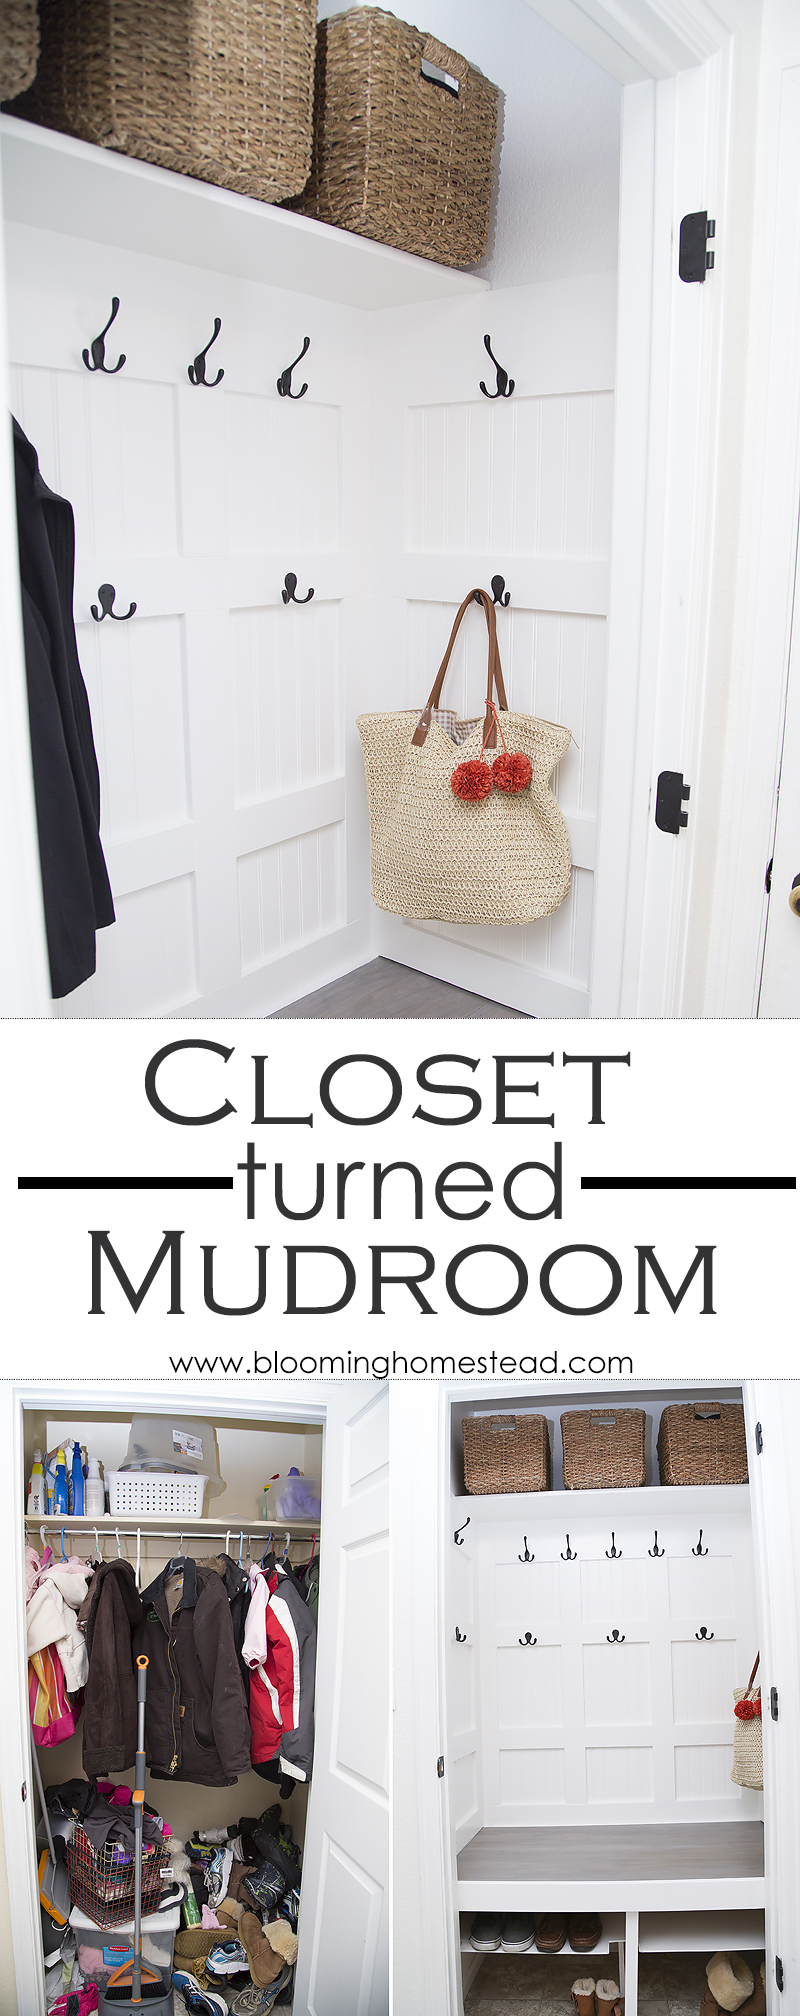 Cluttered closet turns into beautiful and functional mudroom with this fun diy project